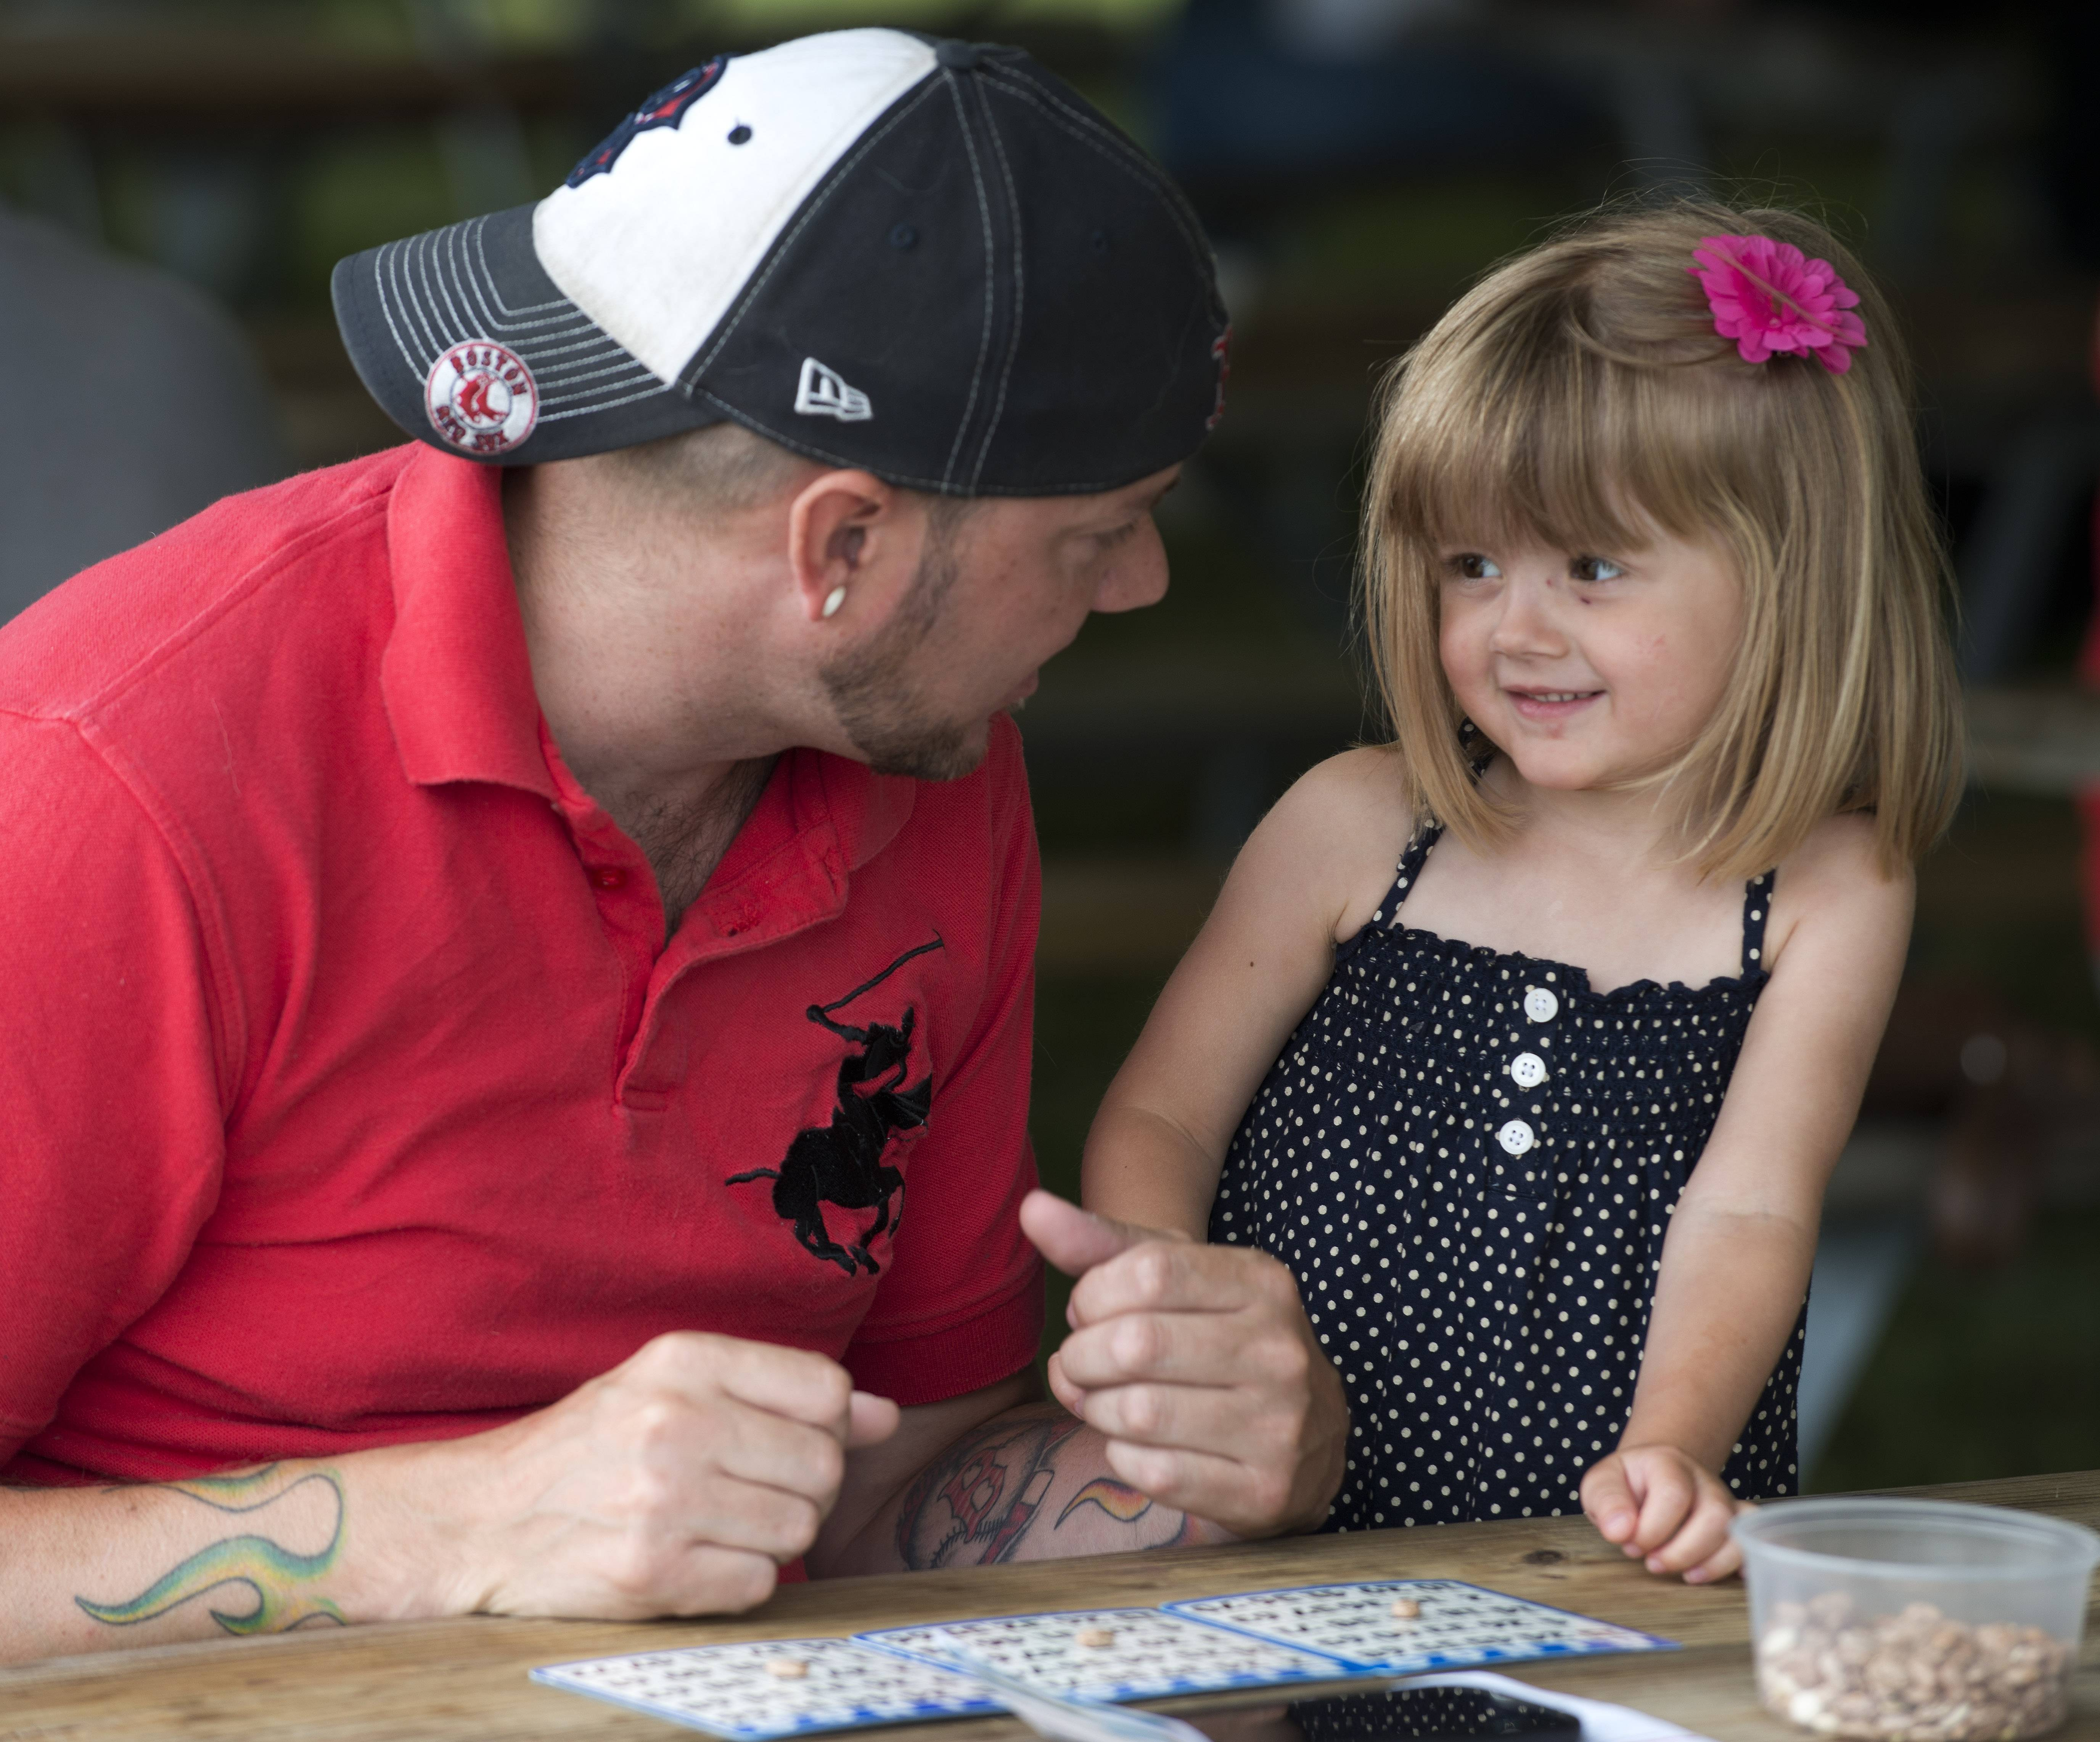 Vivianne Kehrer, 3, of Mundelein is set to play a round of bingo with her dad, Robert, Saturday during day three of Mundelein Community Days.